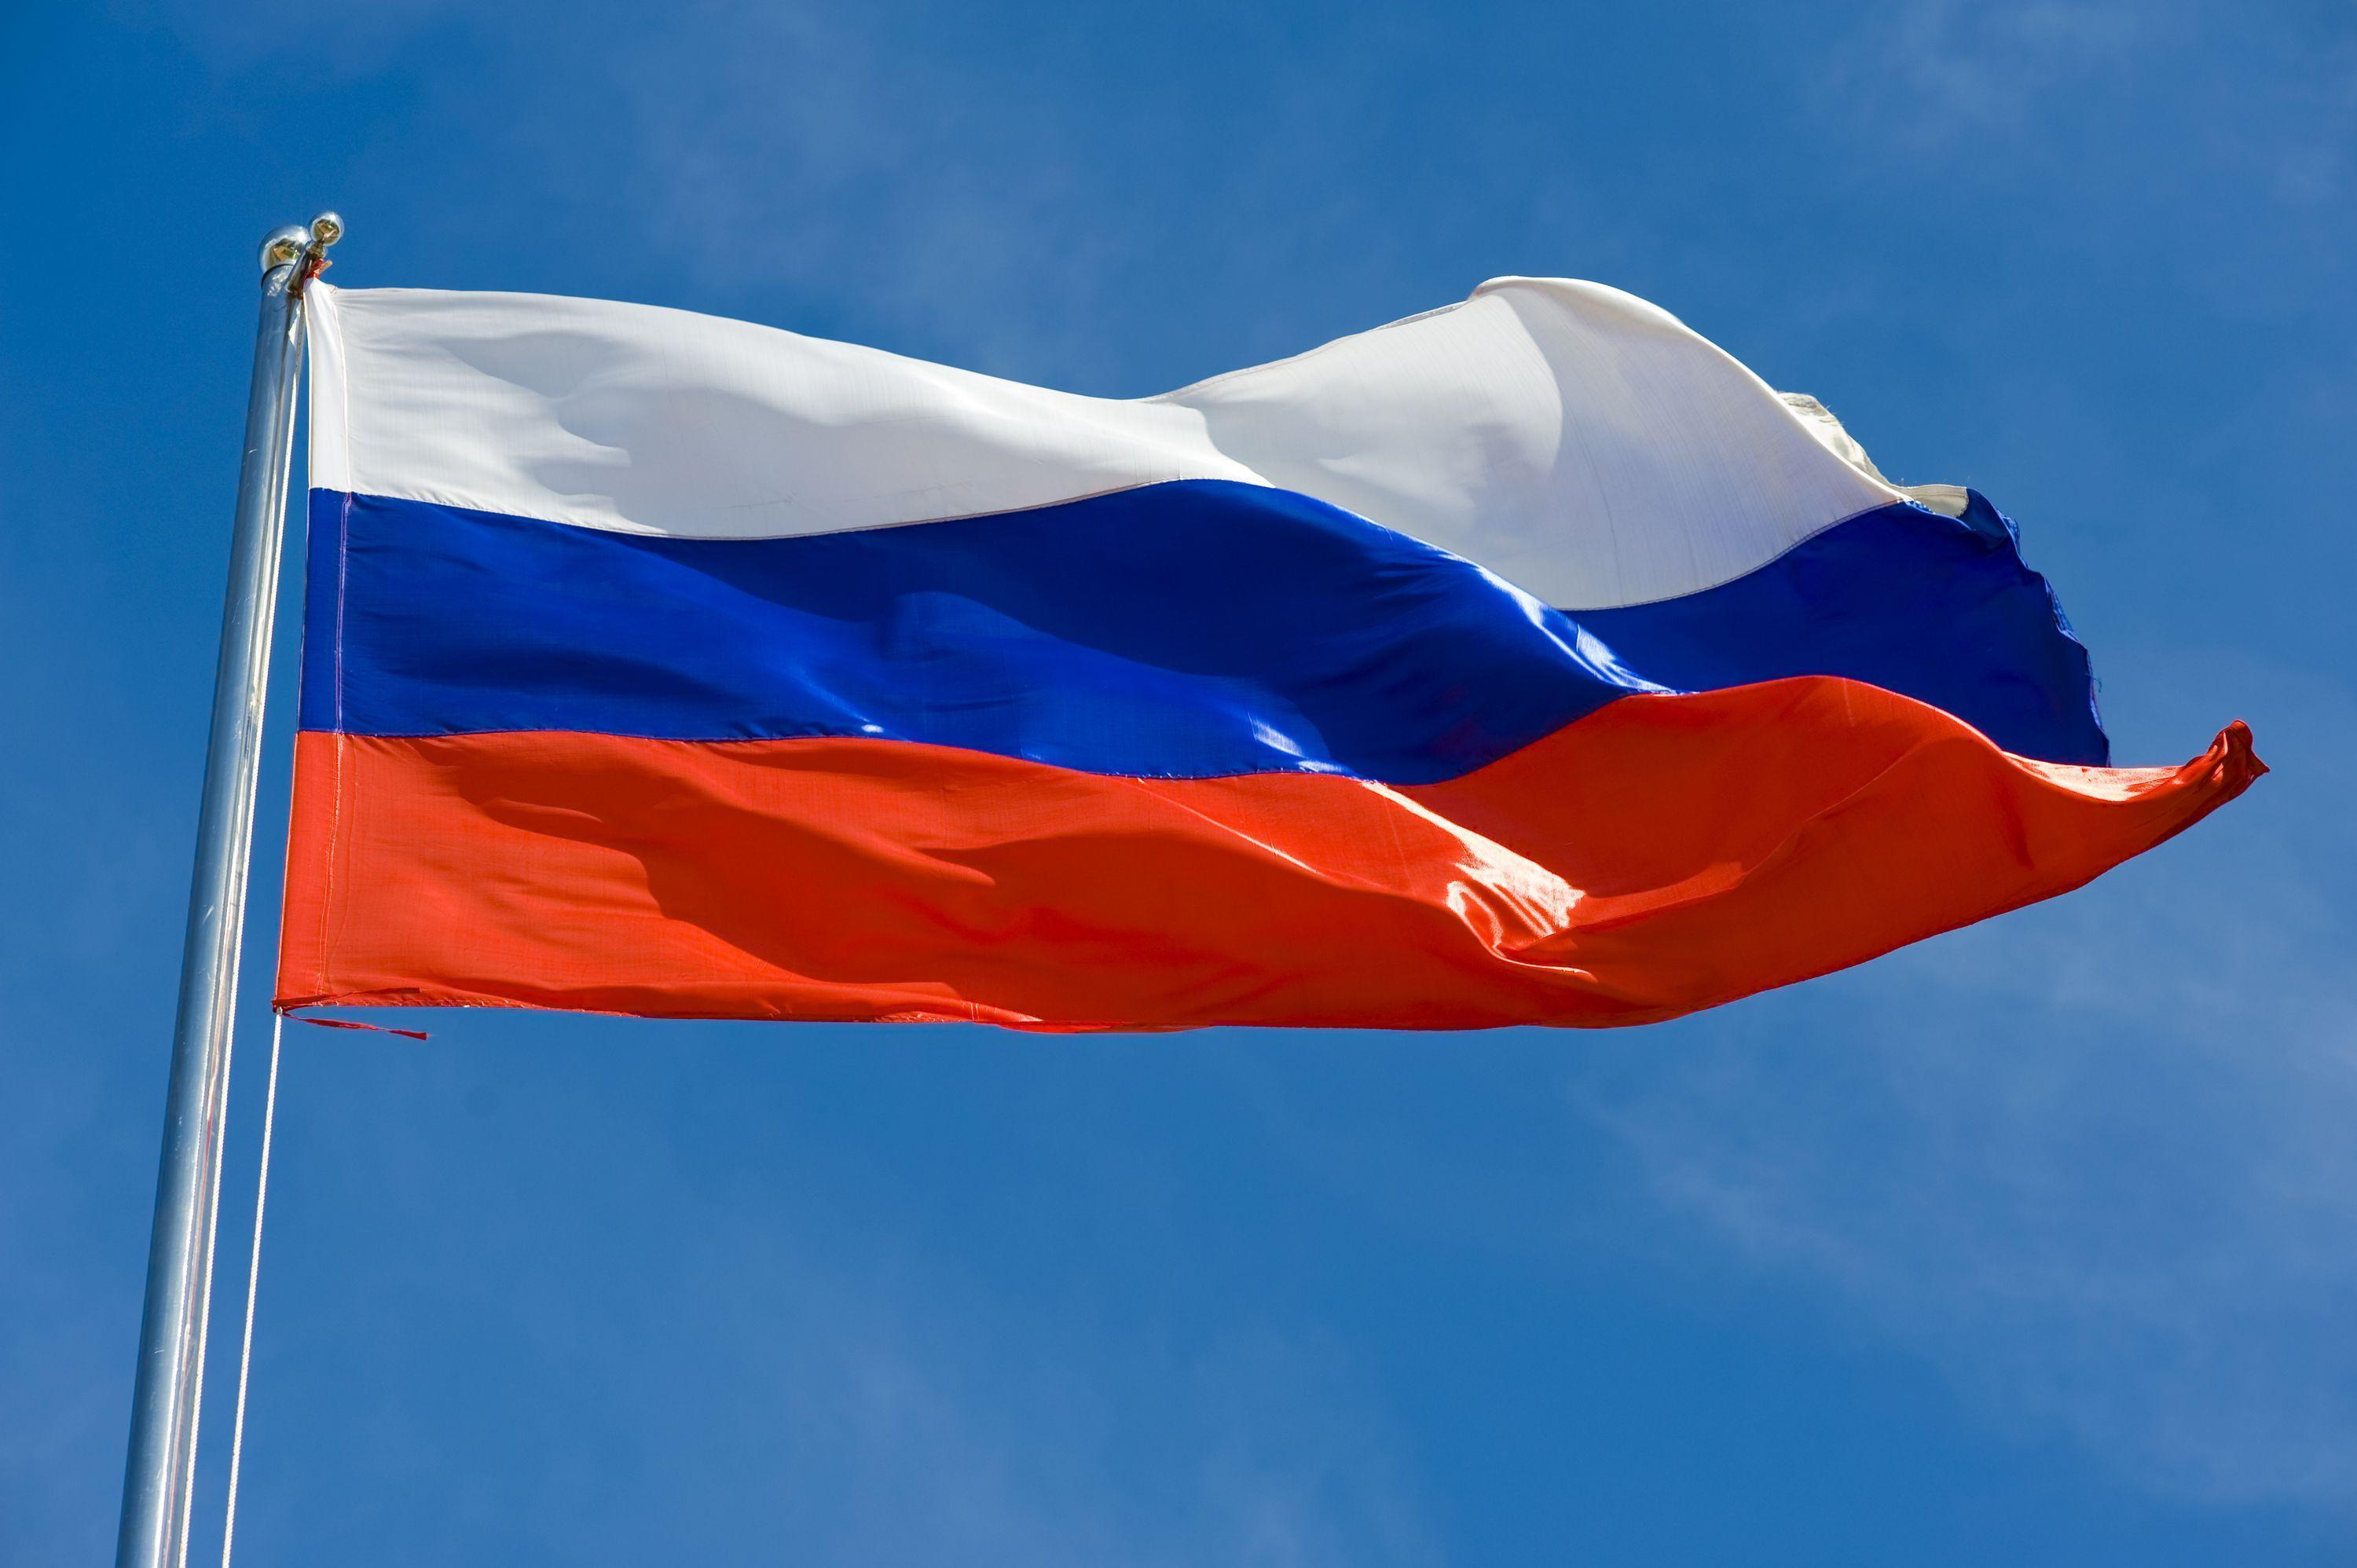 Flag of the Russian Federation wallpapers and images - wallpapers ...